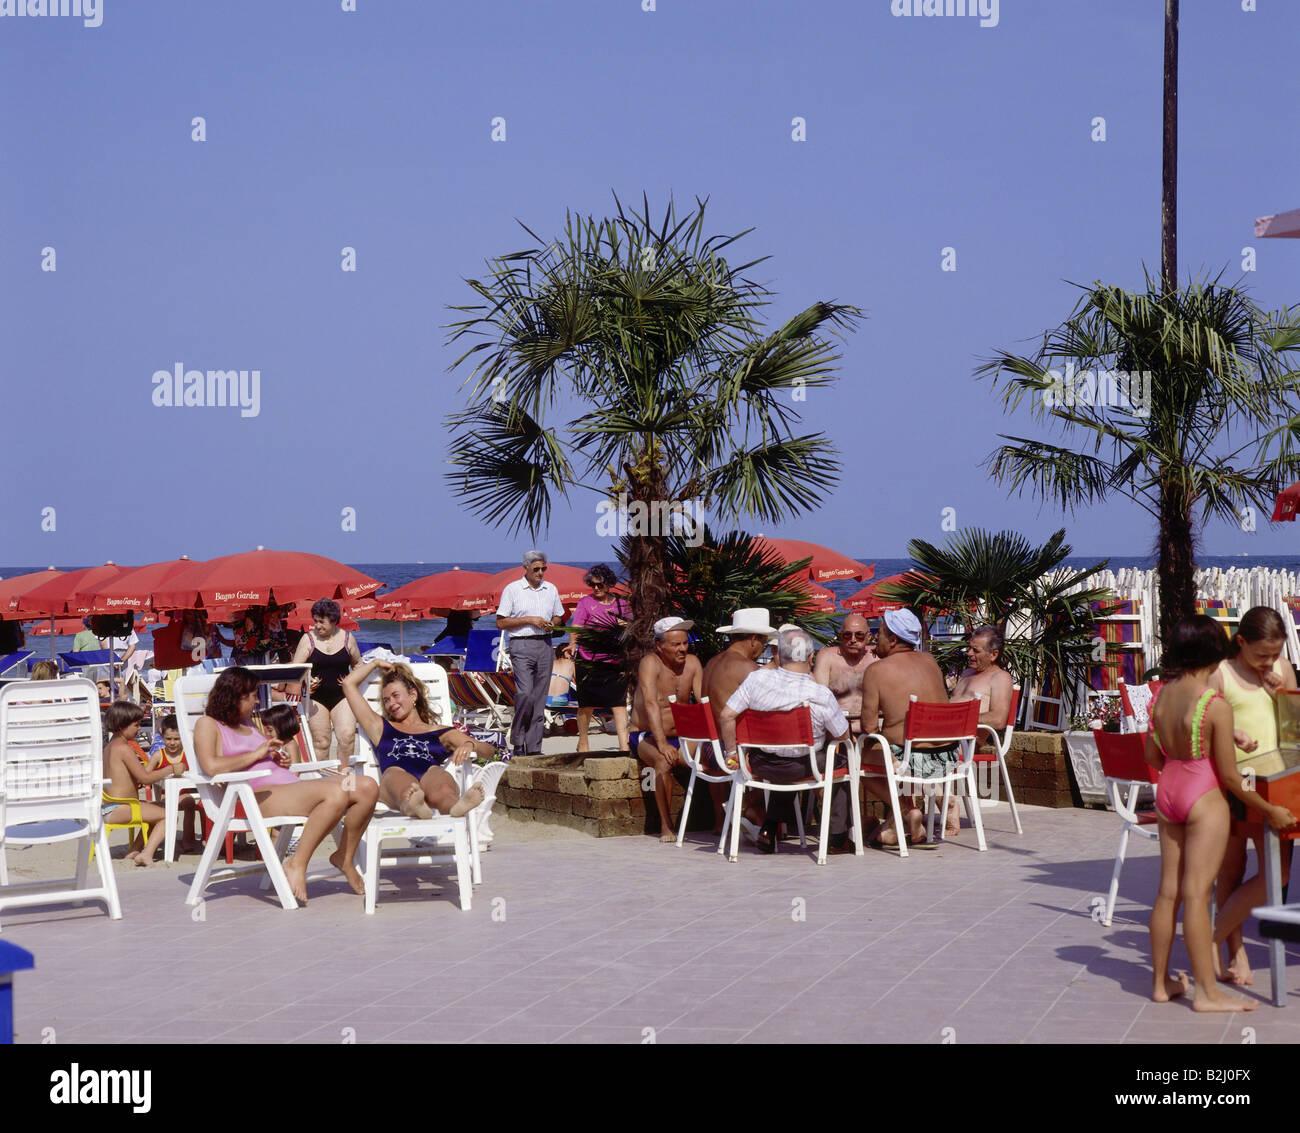 Bagno Florida Cesenatico Promenade Tourists Stock Photos Promenade Tourists Stock